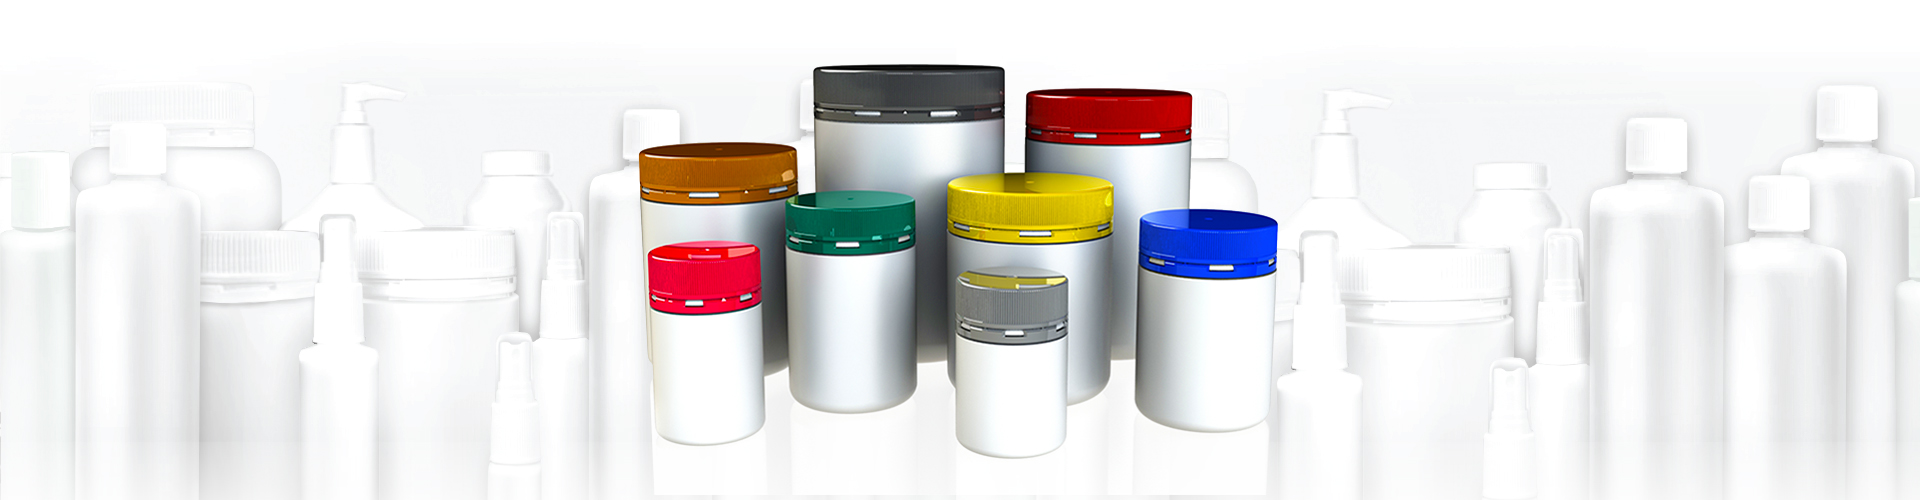 Huge Range of Rigid Plastic Containers Available